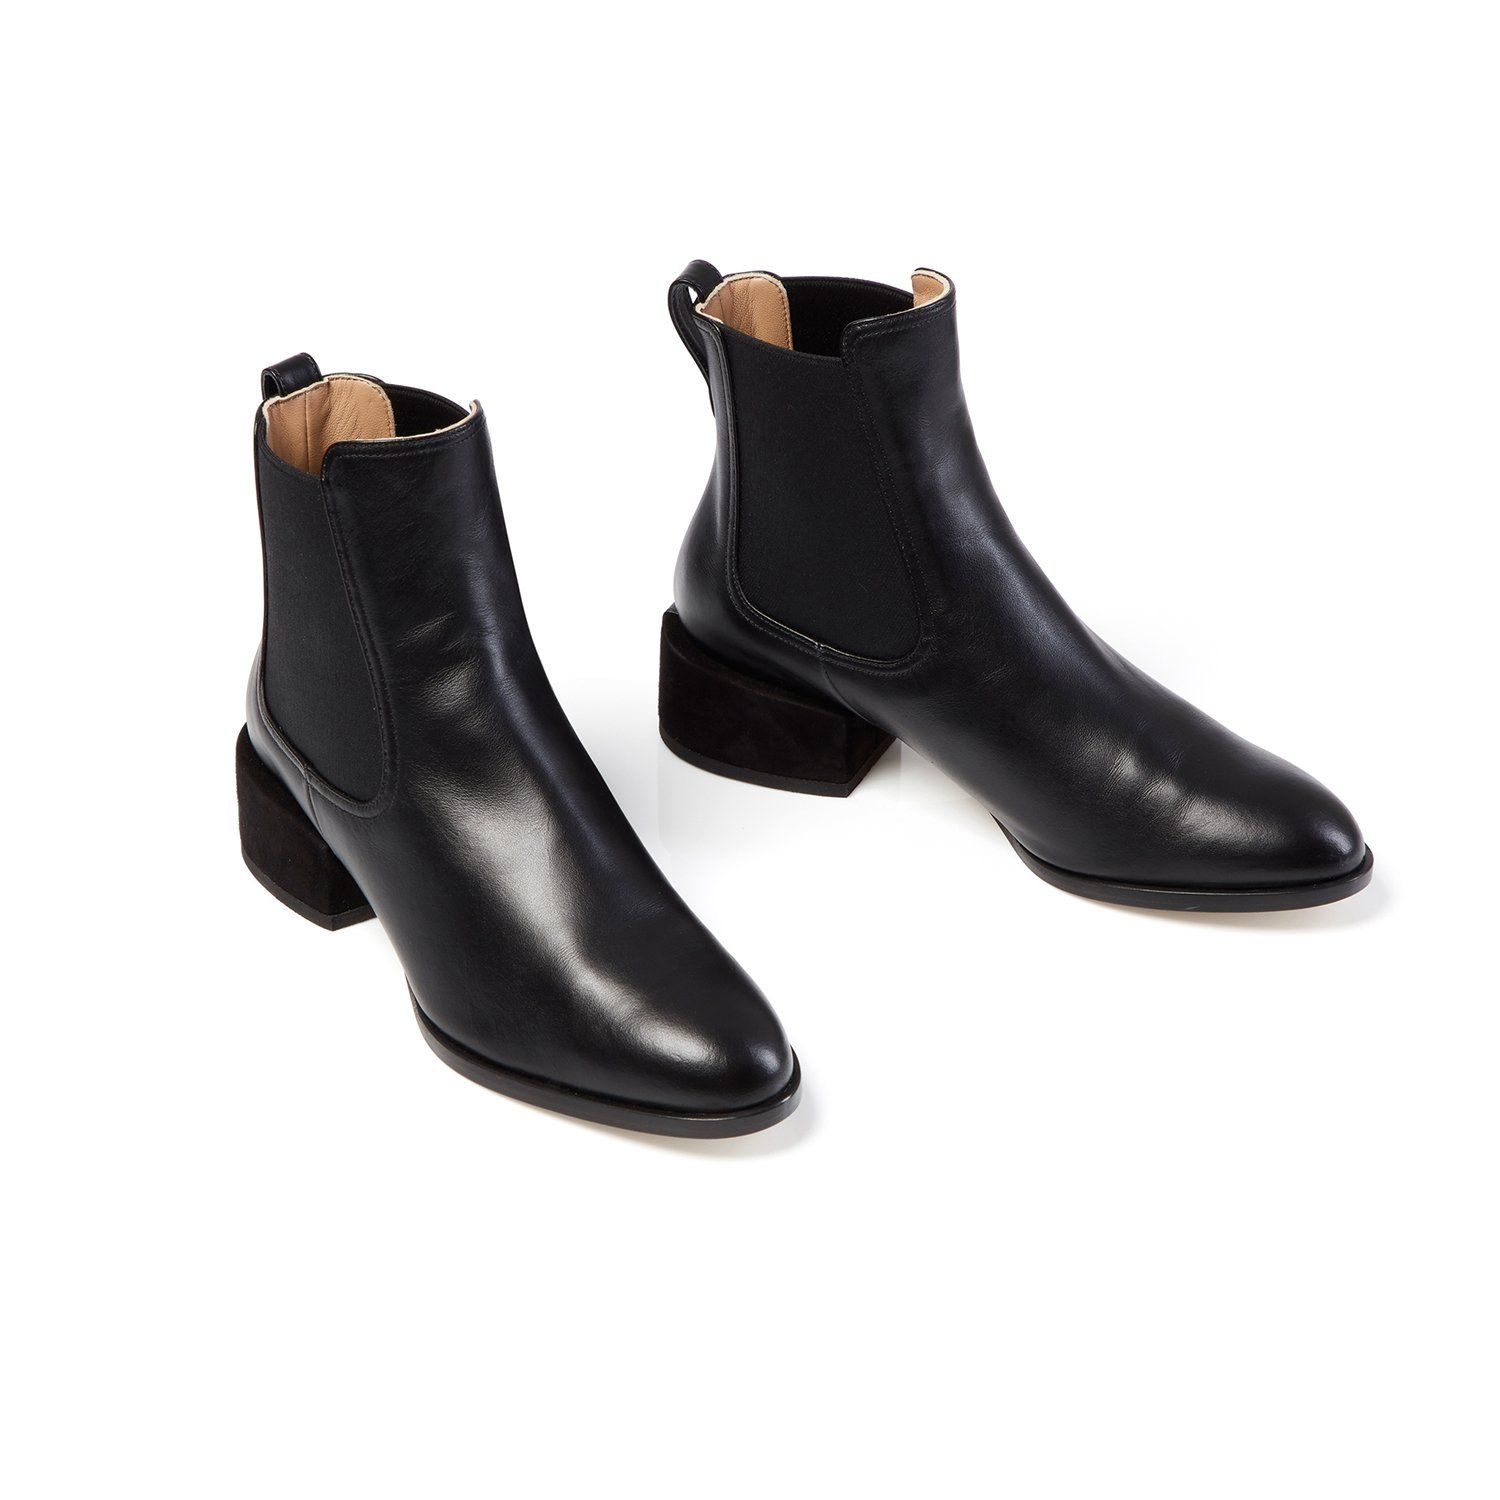 ef99dbe7e88 Designer luxury Italian made timeless classic chelsea black ankle booties,  GEM boots, Dear Frances